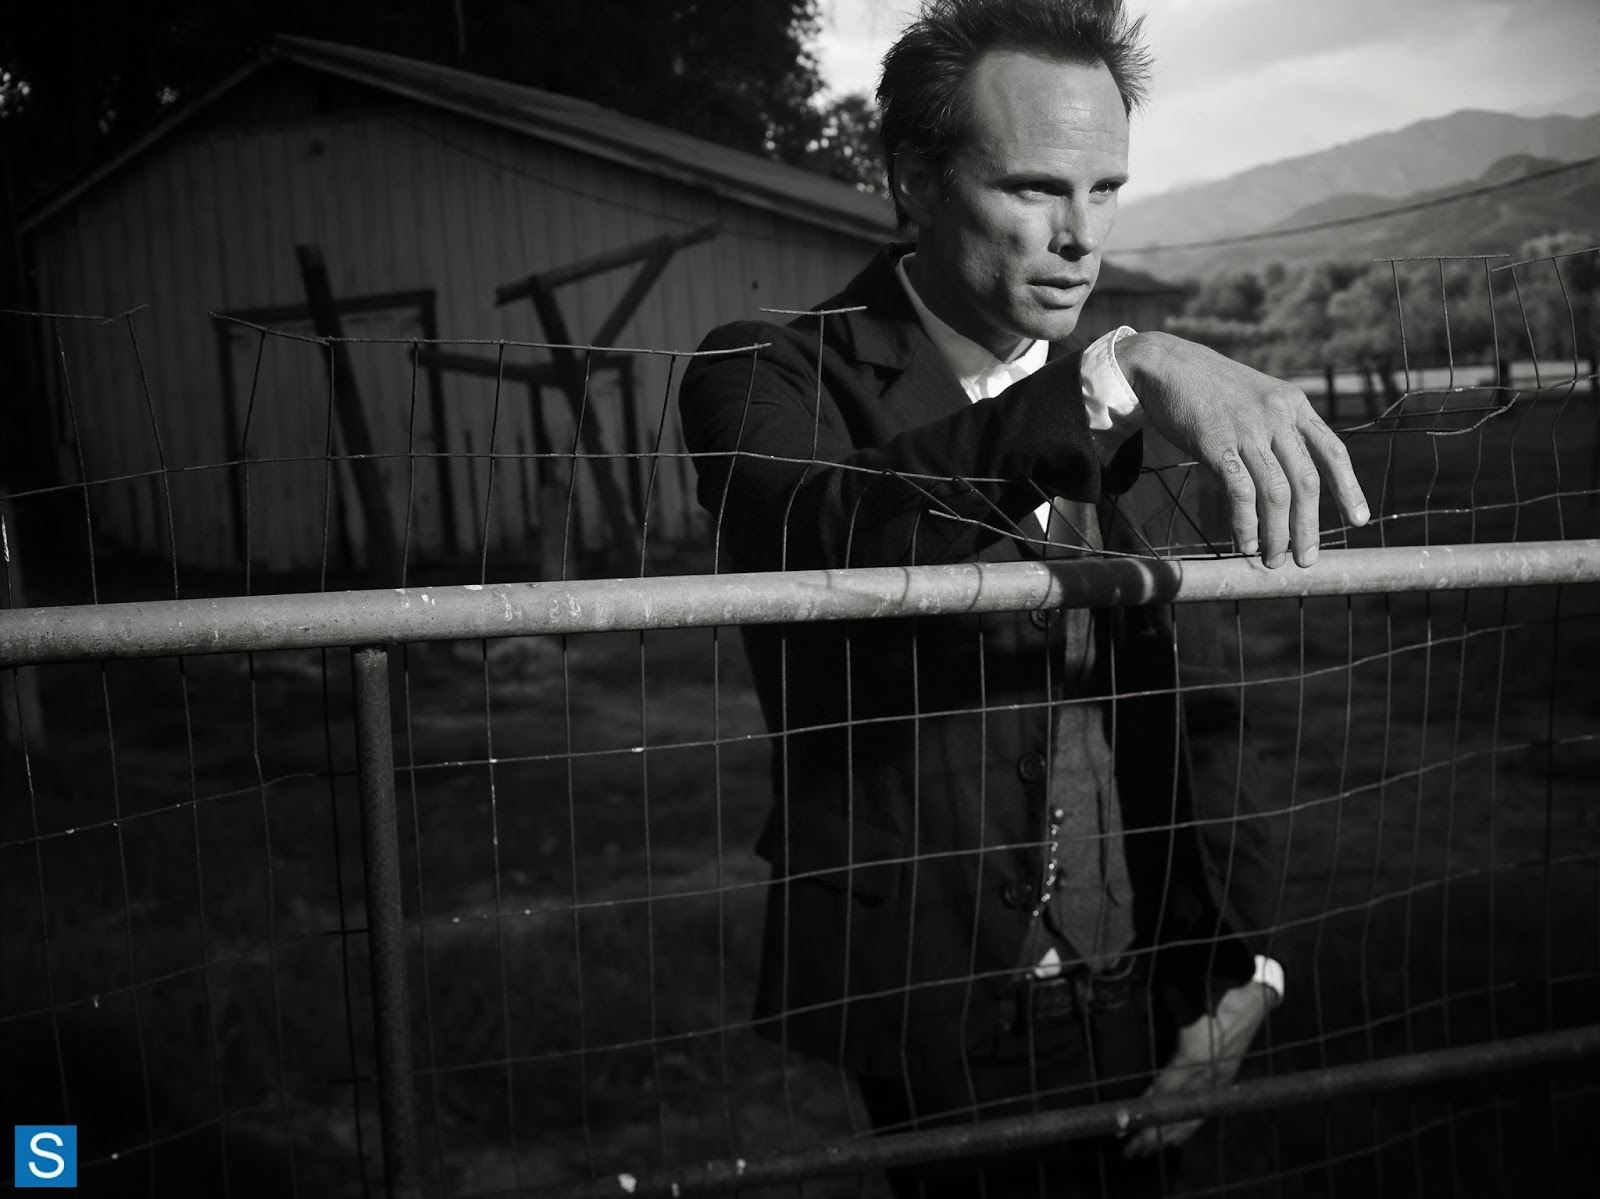 Justified - 4.13 Ghosts - Live Tweeting (COMPLETED)